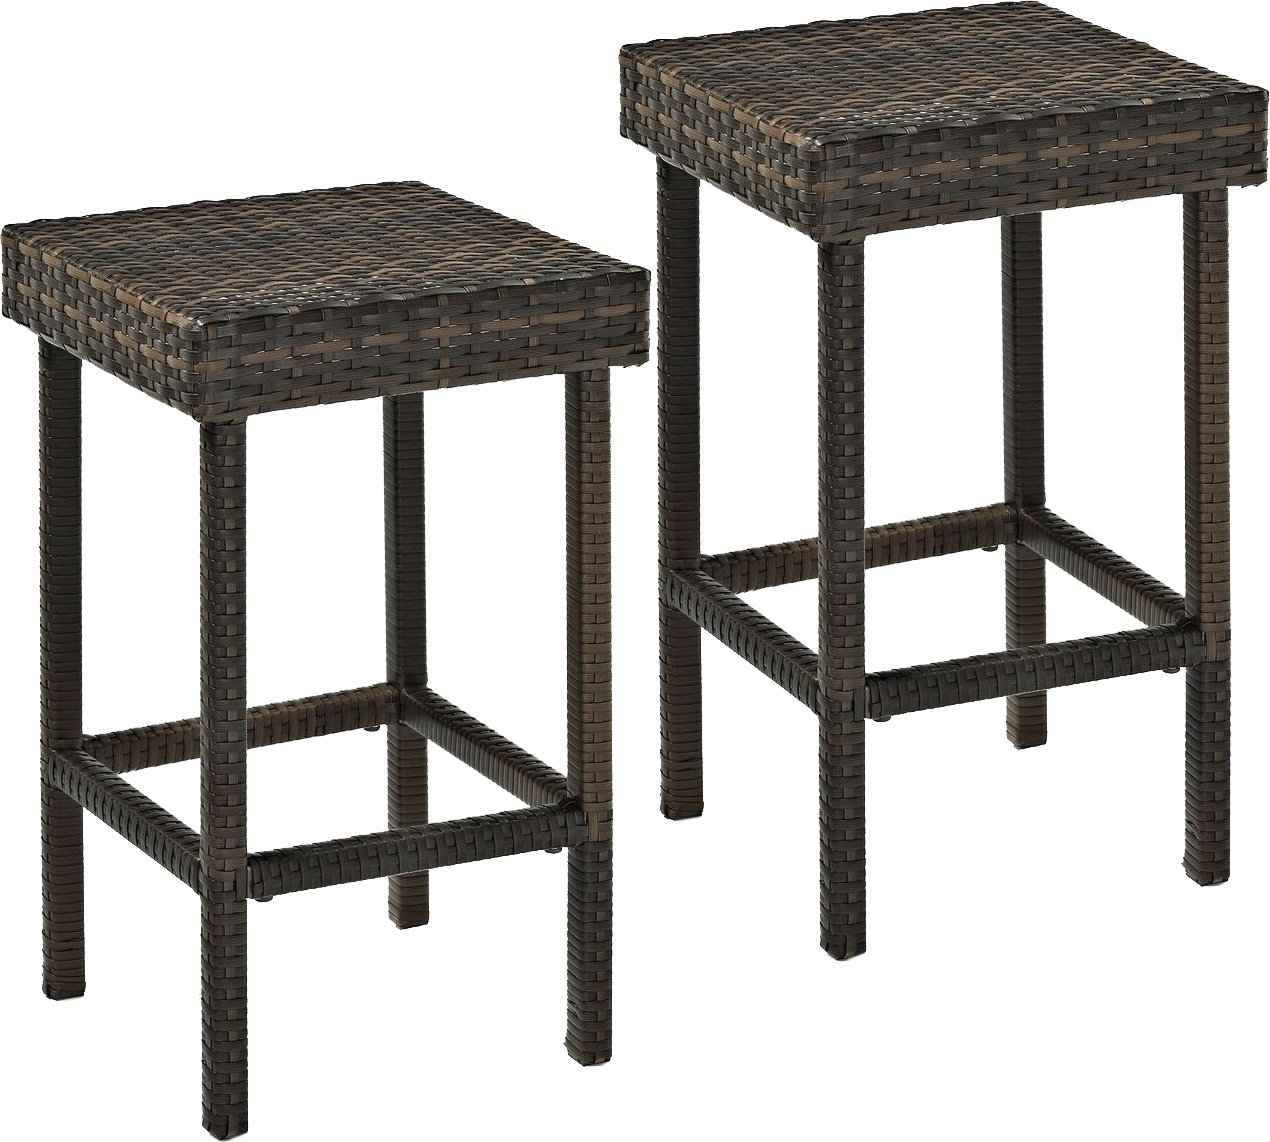 Crosley Furniture Palm Harbor Outdoor Wicker 24-inch Stools – Brown Set of 2